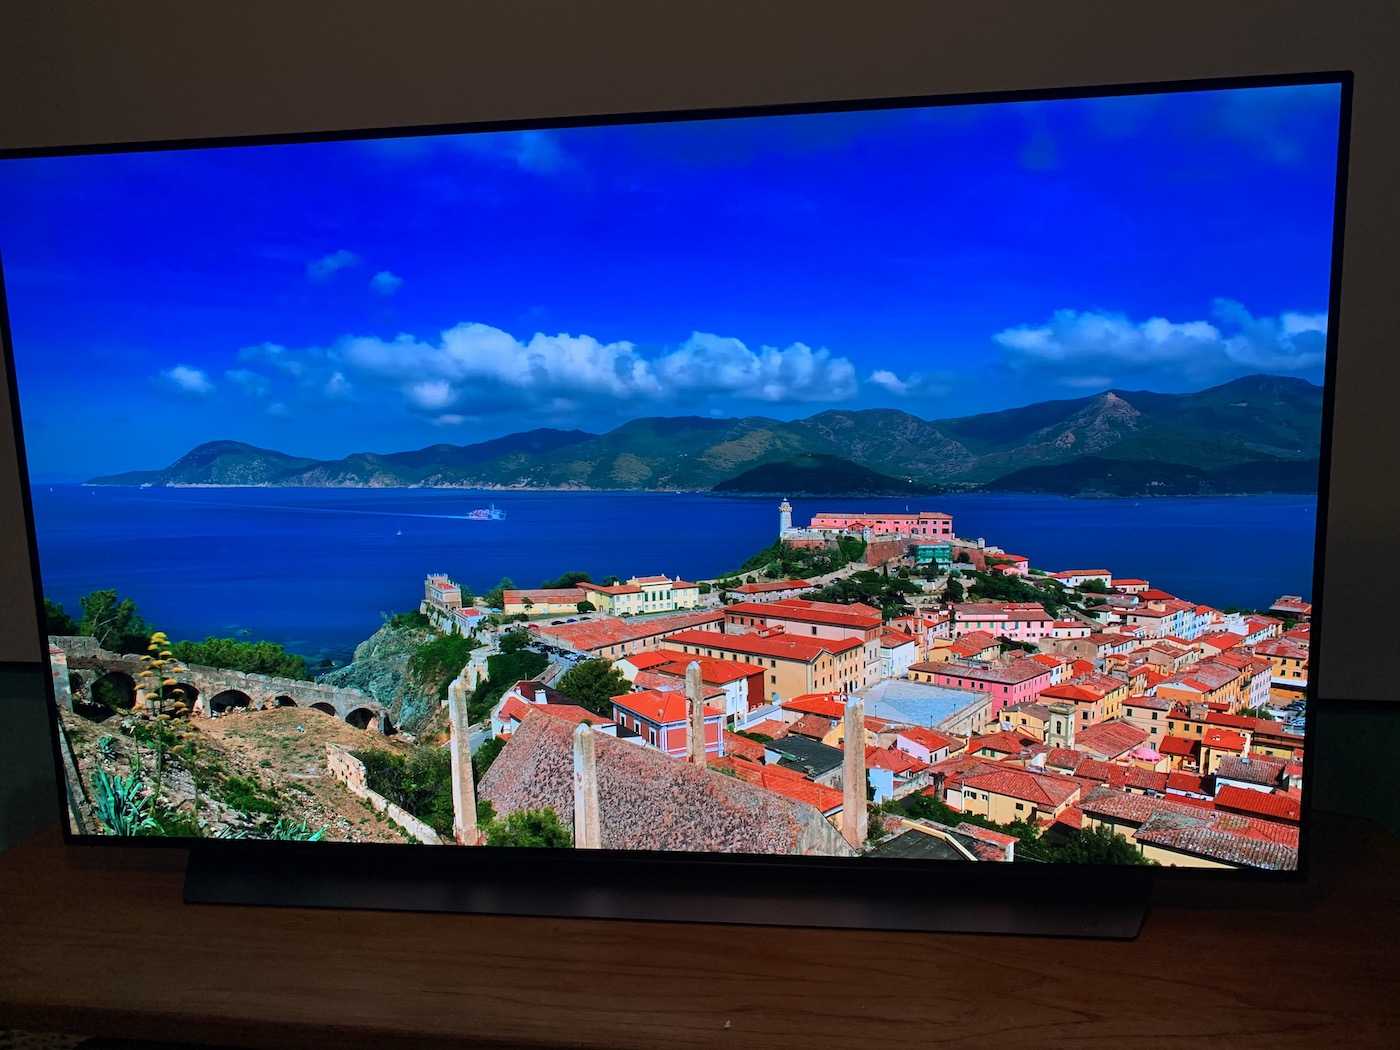 LG C9 TV's OLED Black Feature for Gamers